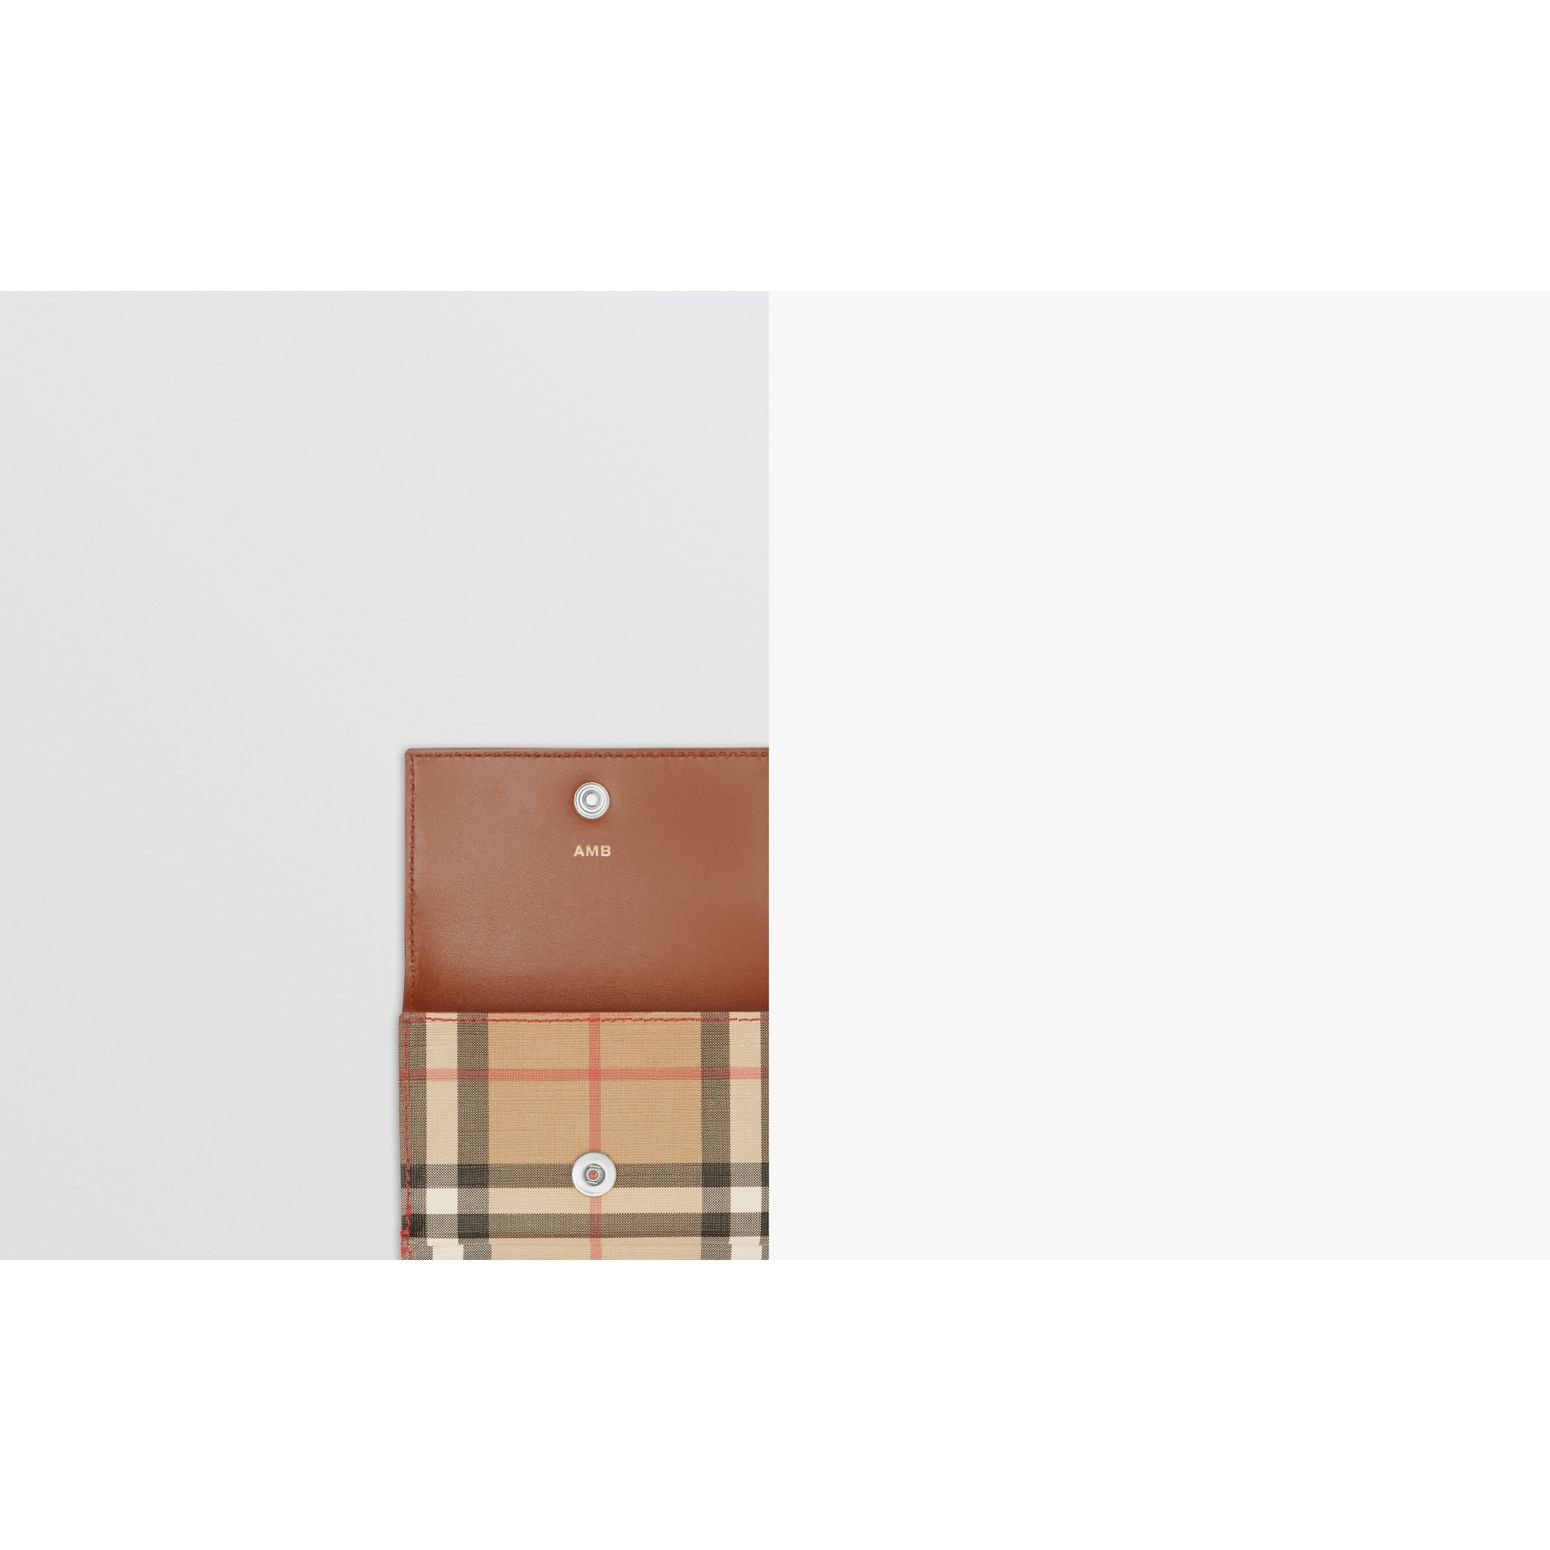 Small Vintage Check E-canvas Folding Wallet in Malt Brown - Women | Burberry Hong Kong S.A.R - gallery image 1